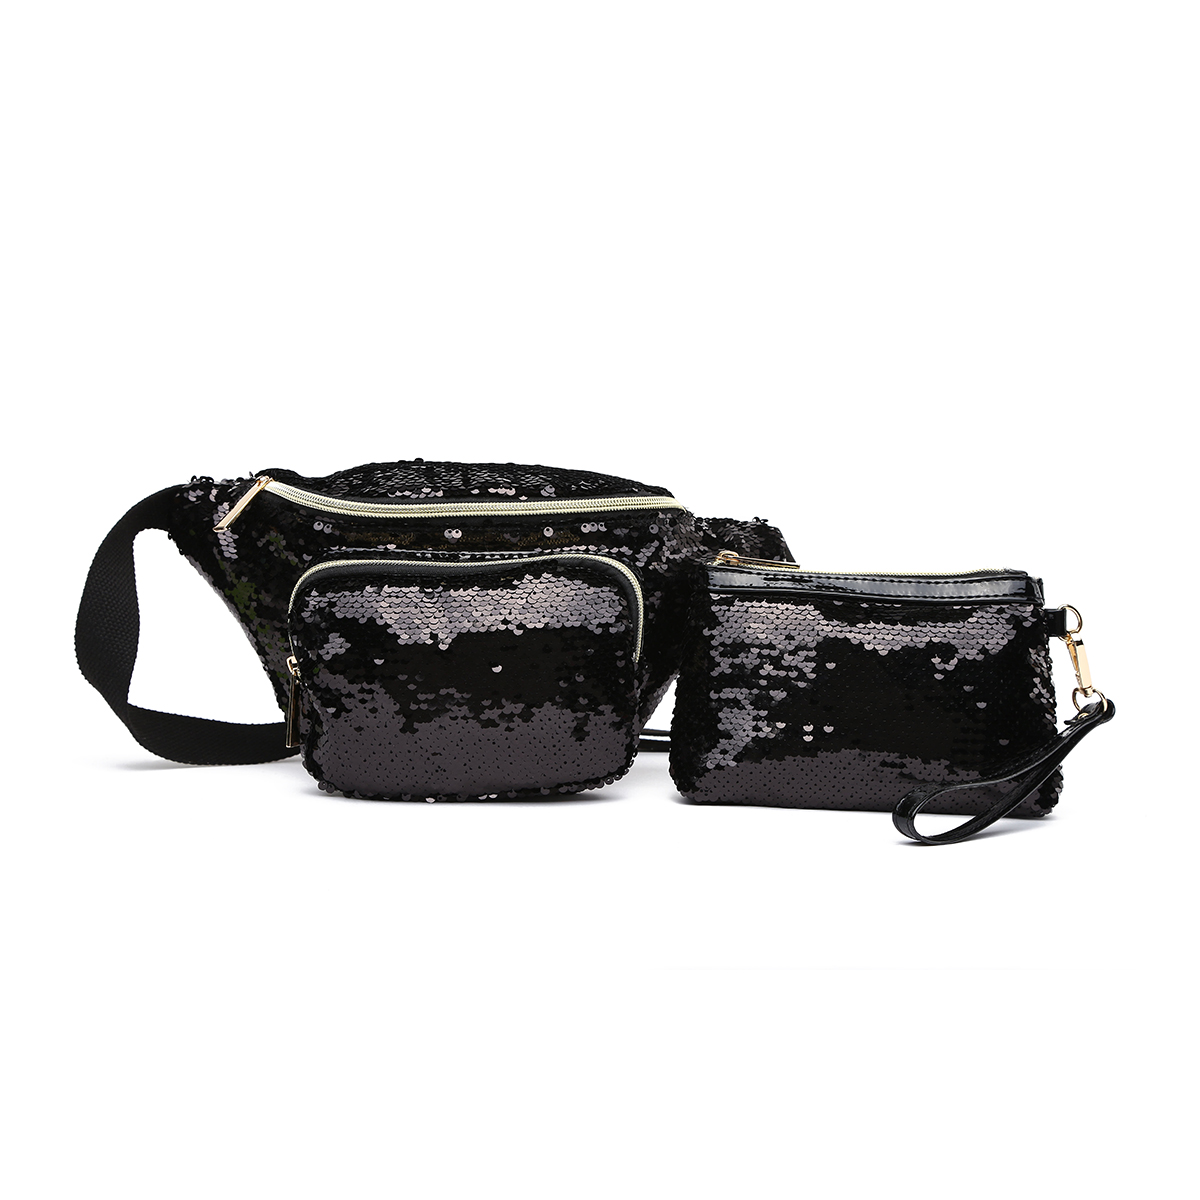 Glitter Bum Waist Fanny Pack with Money Bag Black